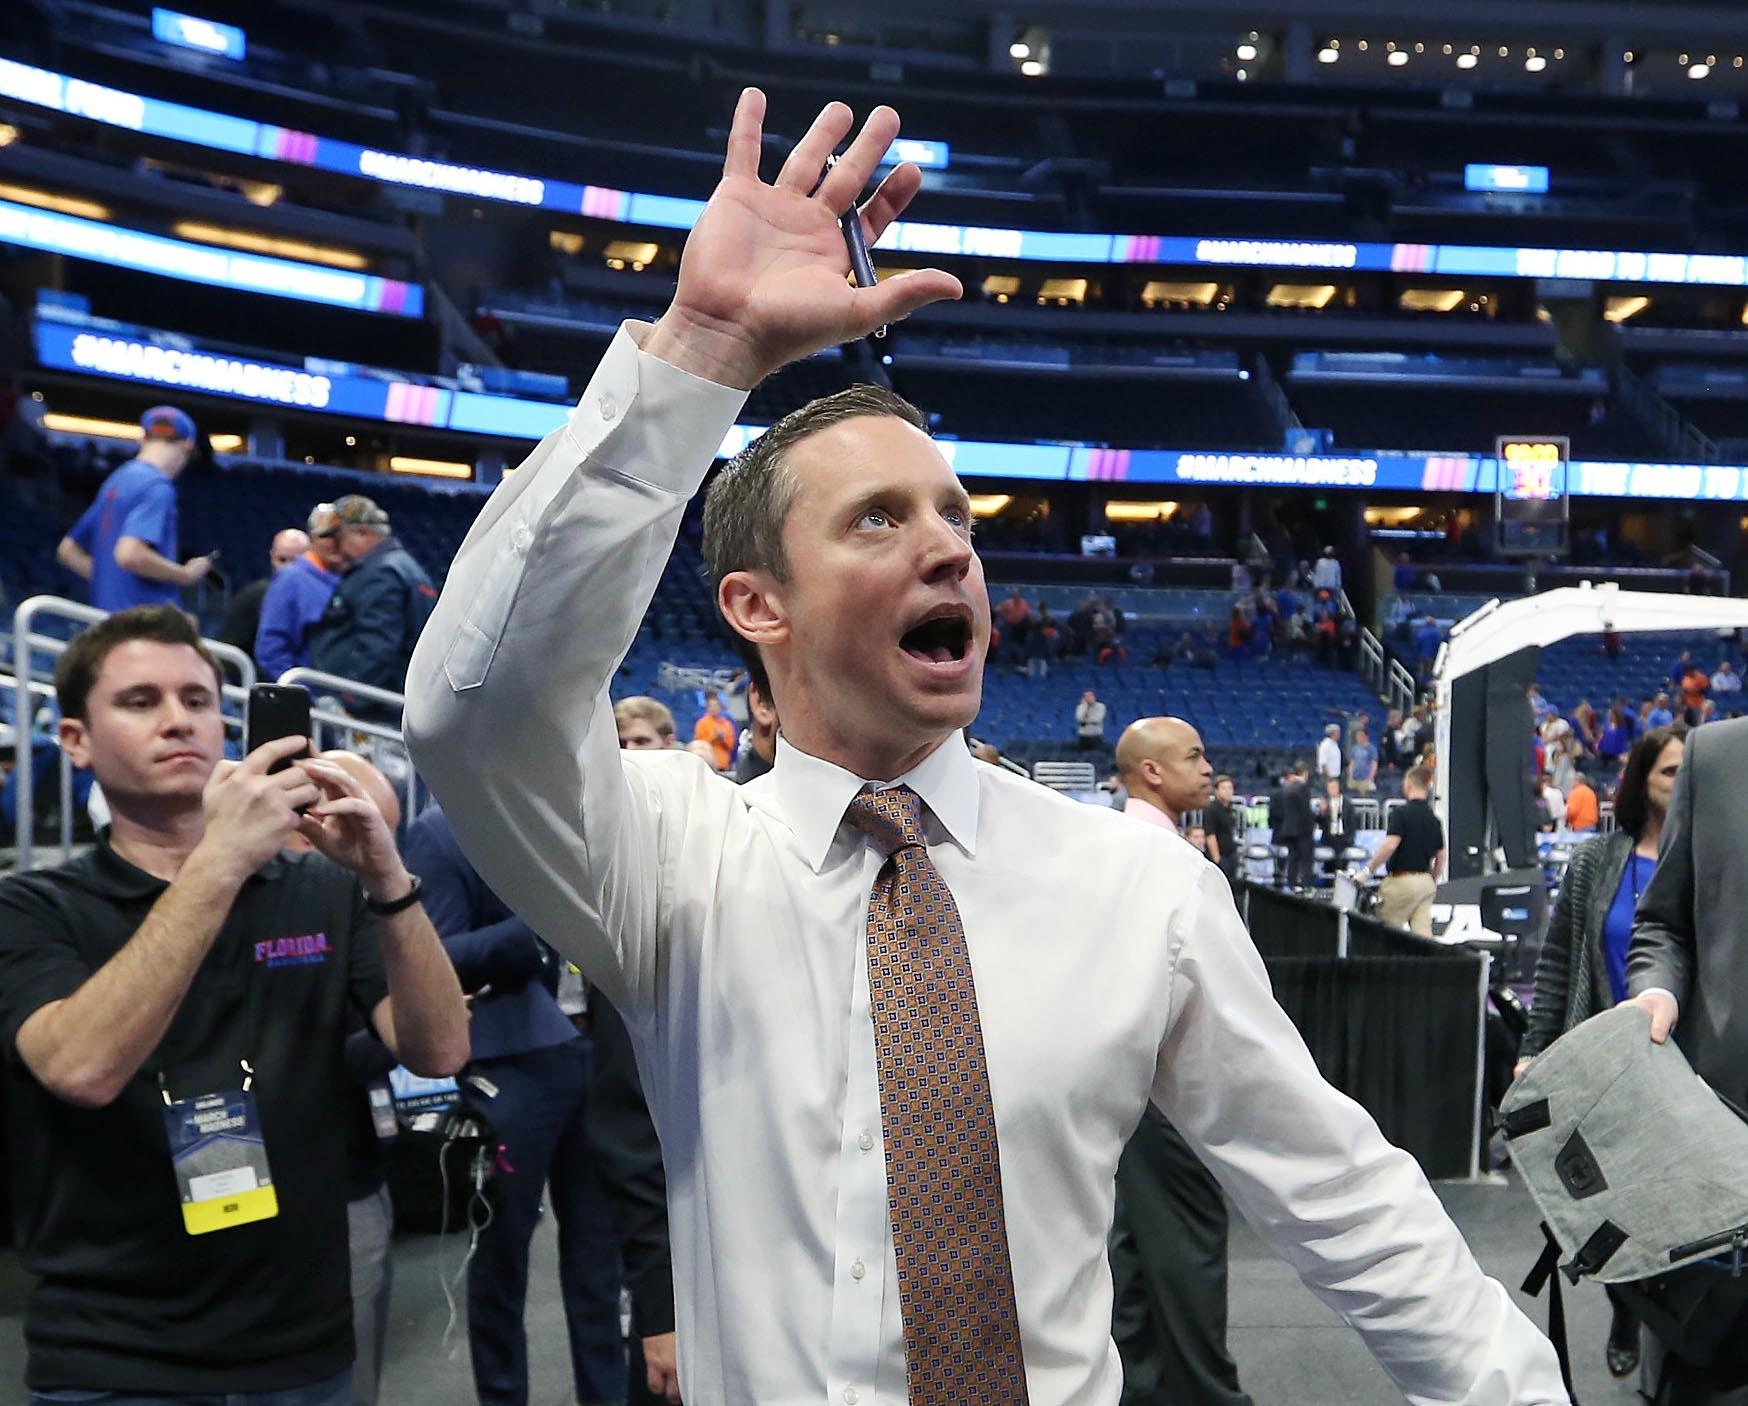 Florida head coach Mike White cheers as he leaves the court after an 80-65 win against East Tennessee State in the first round of the NCAA Tournament on Thursday, March 16, 2017, at the Amway Center in Orlando, Fla. (Stephen M. Dowell/Orlando Sentinel/TNS)